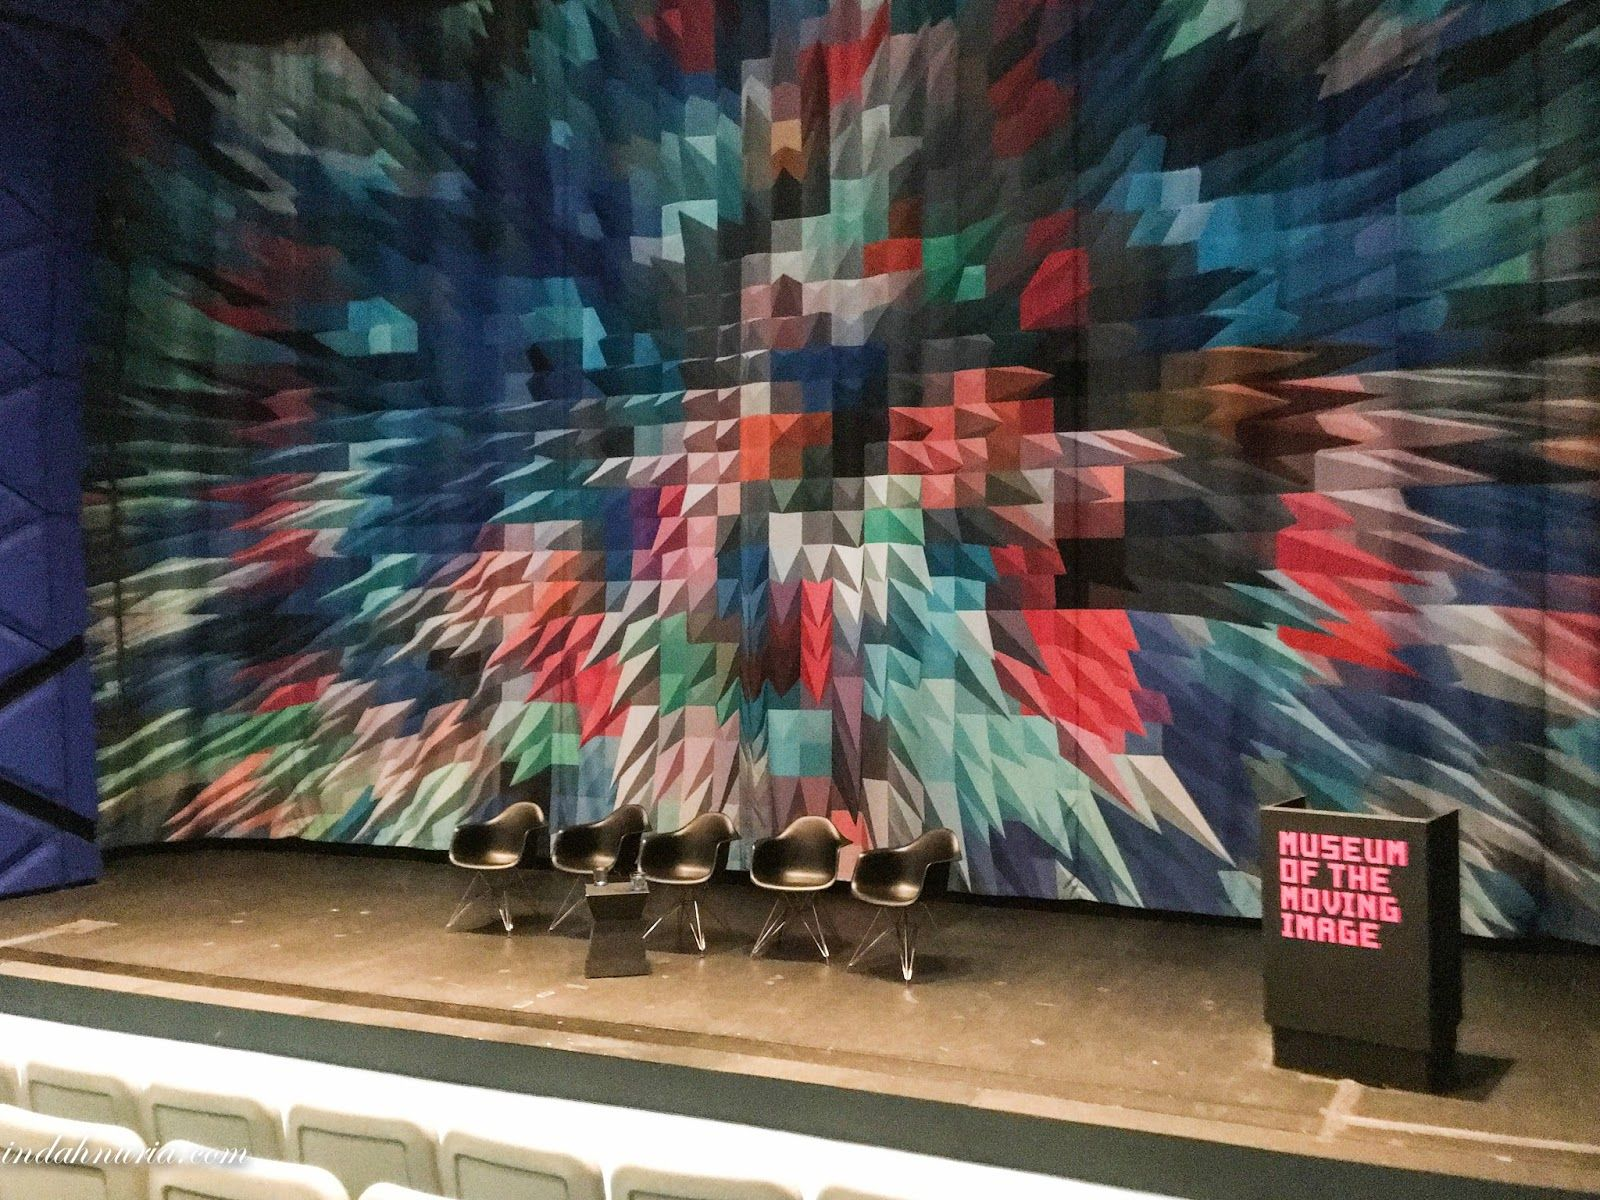 museum of moving image - auditorium